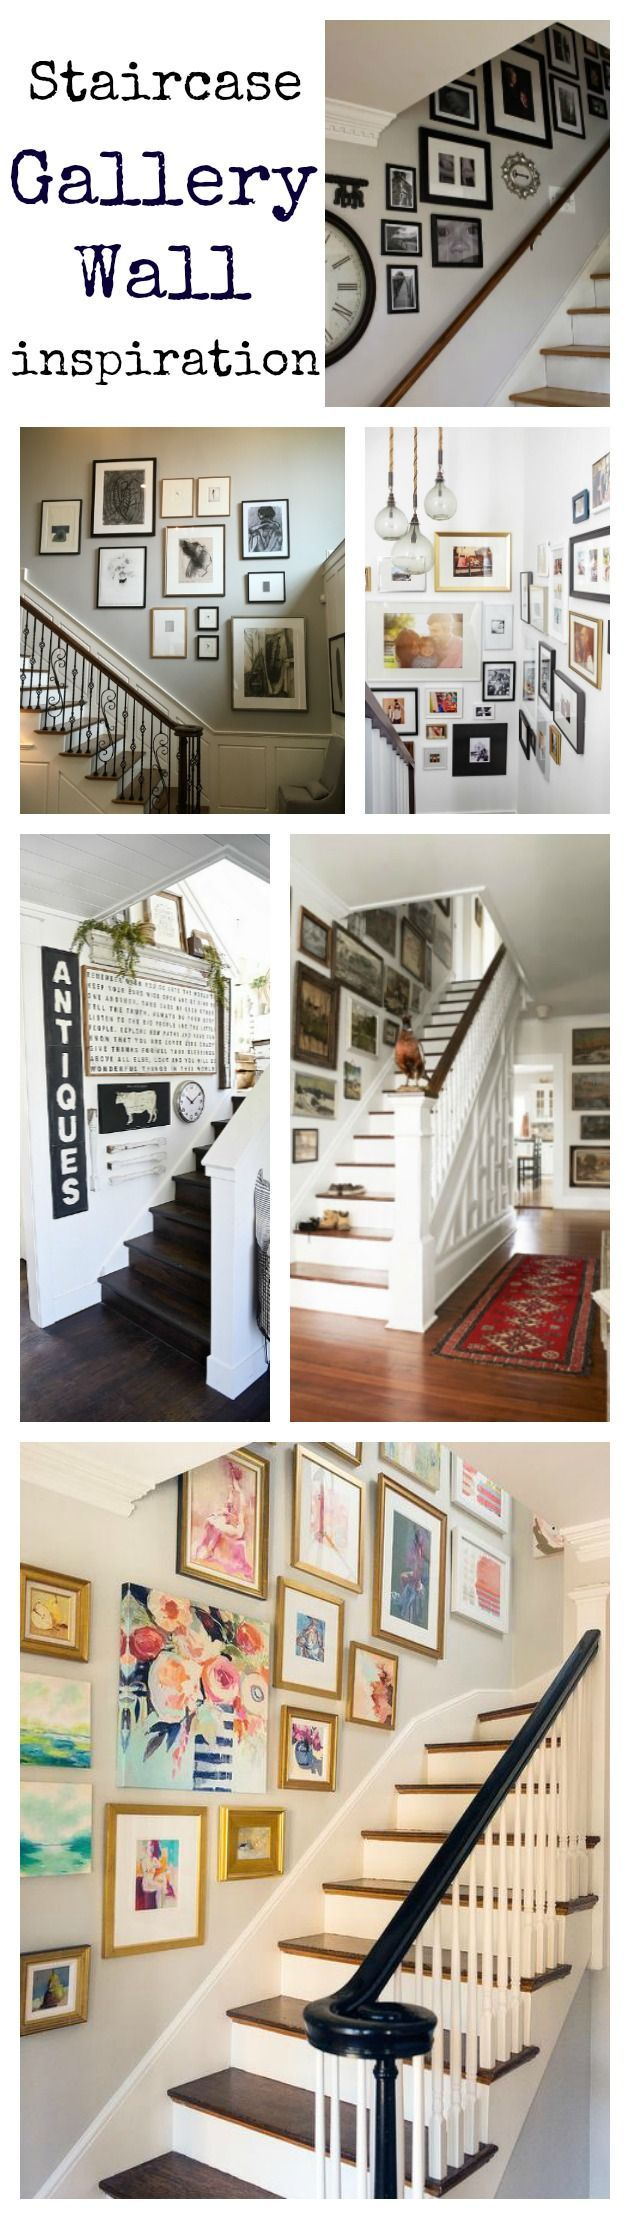 Staircase Gallery Wall Inspiration